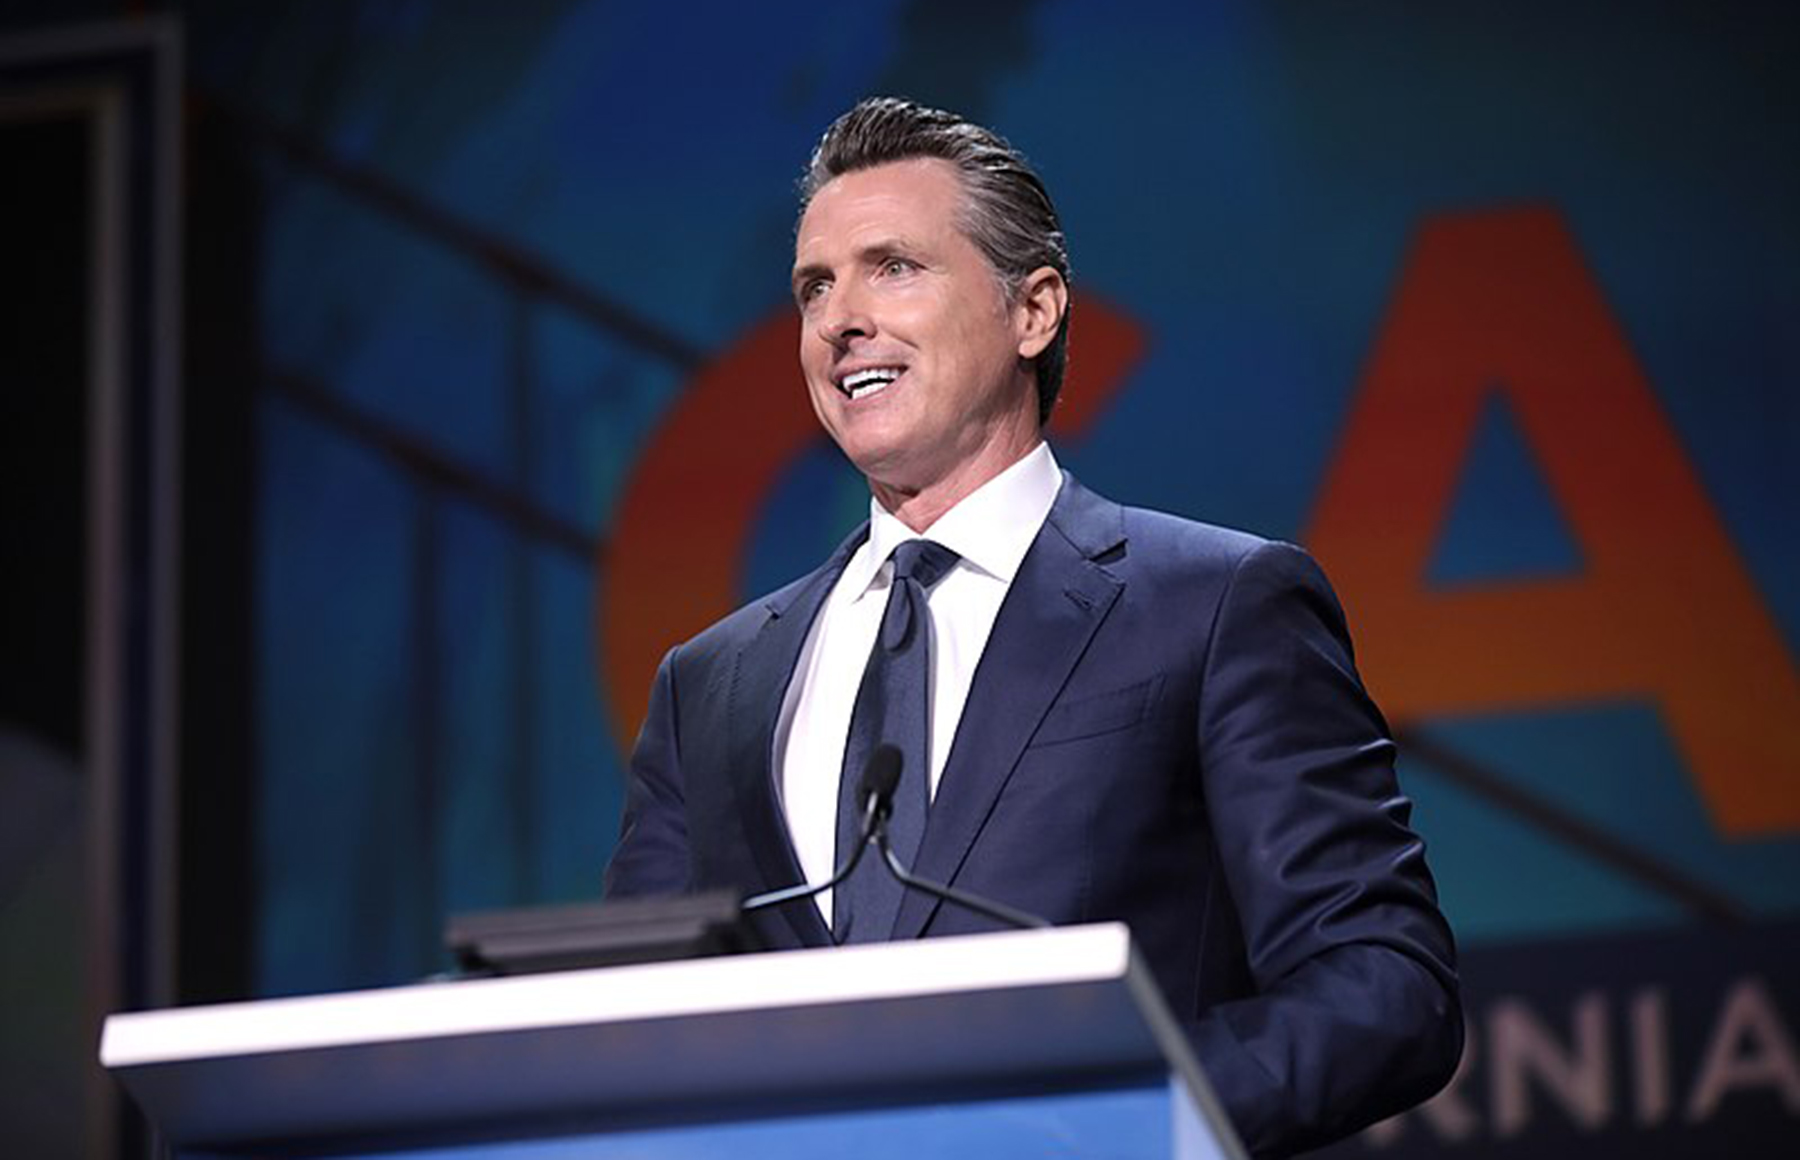 CA voters 'most likely to vote' closely divided on Newsom recall, UC Berkeley study suggests